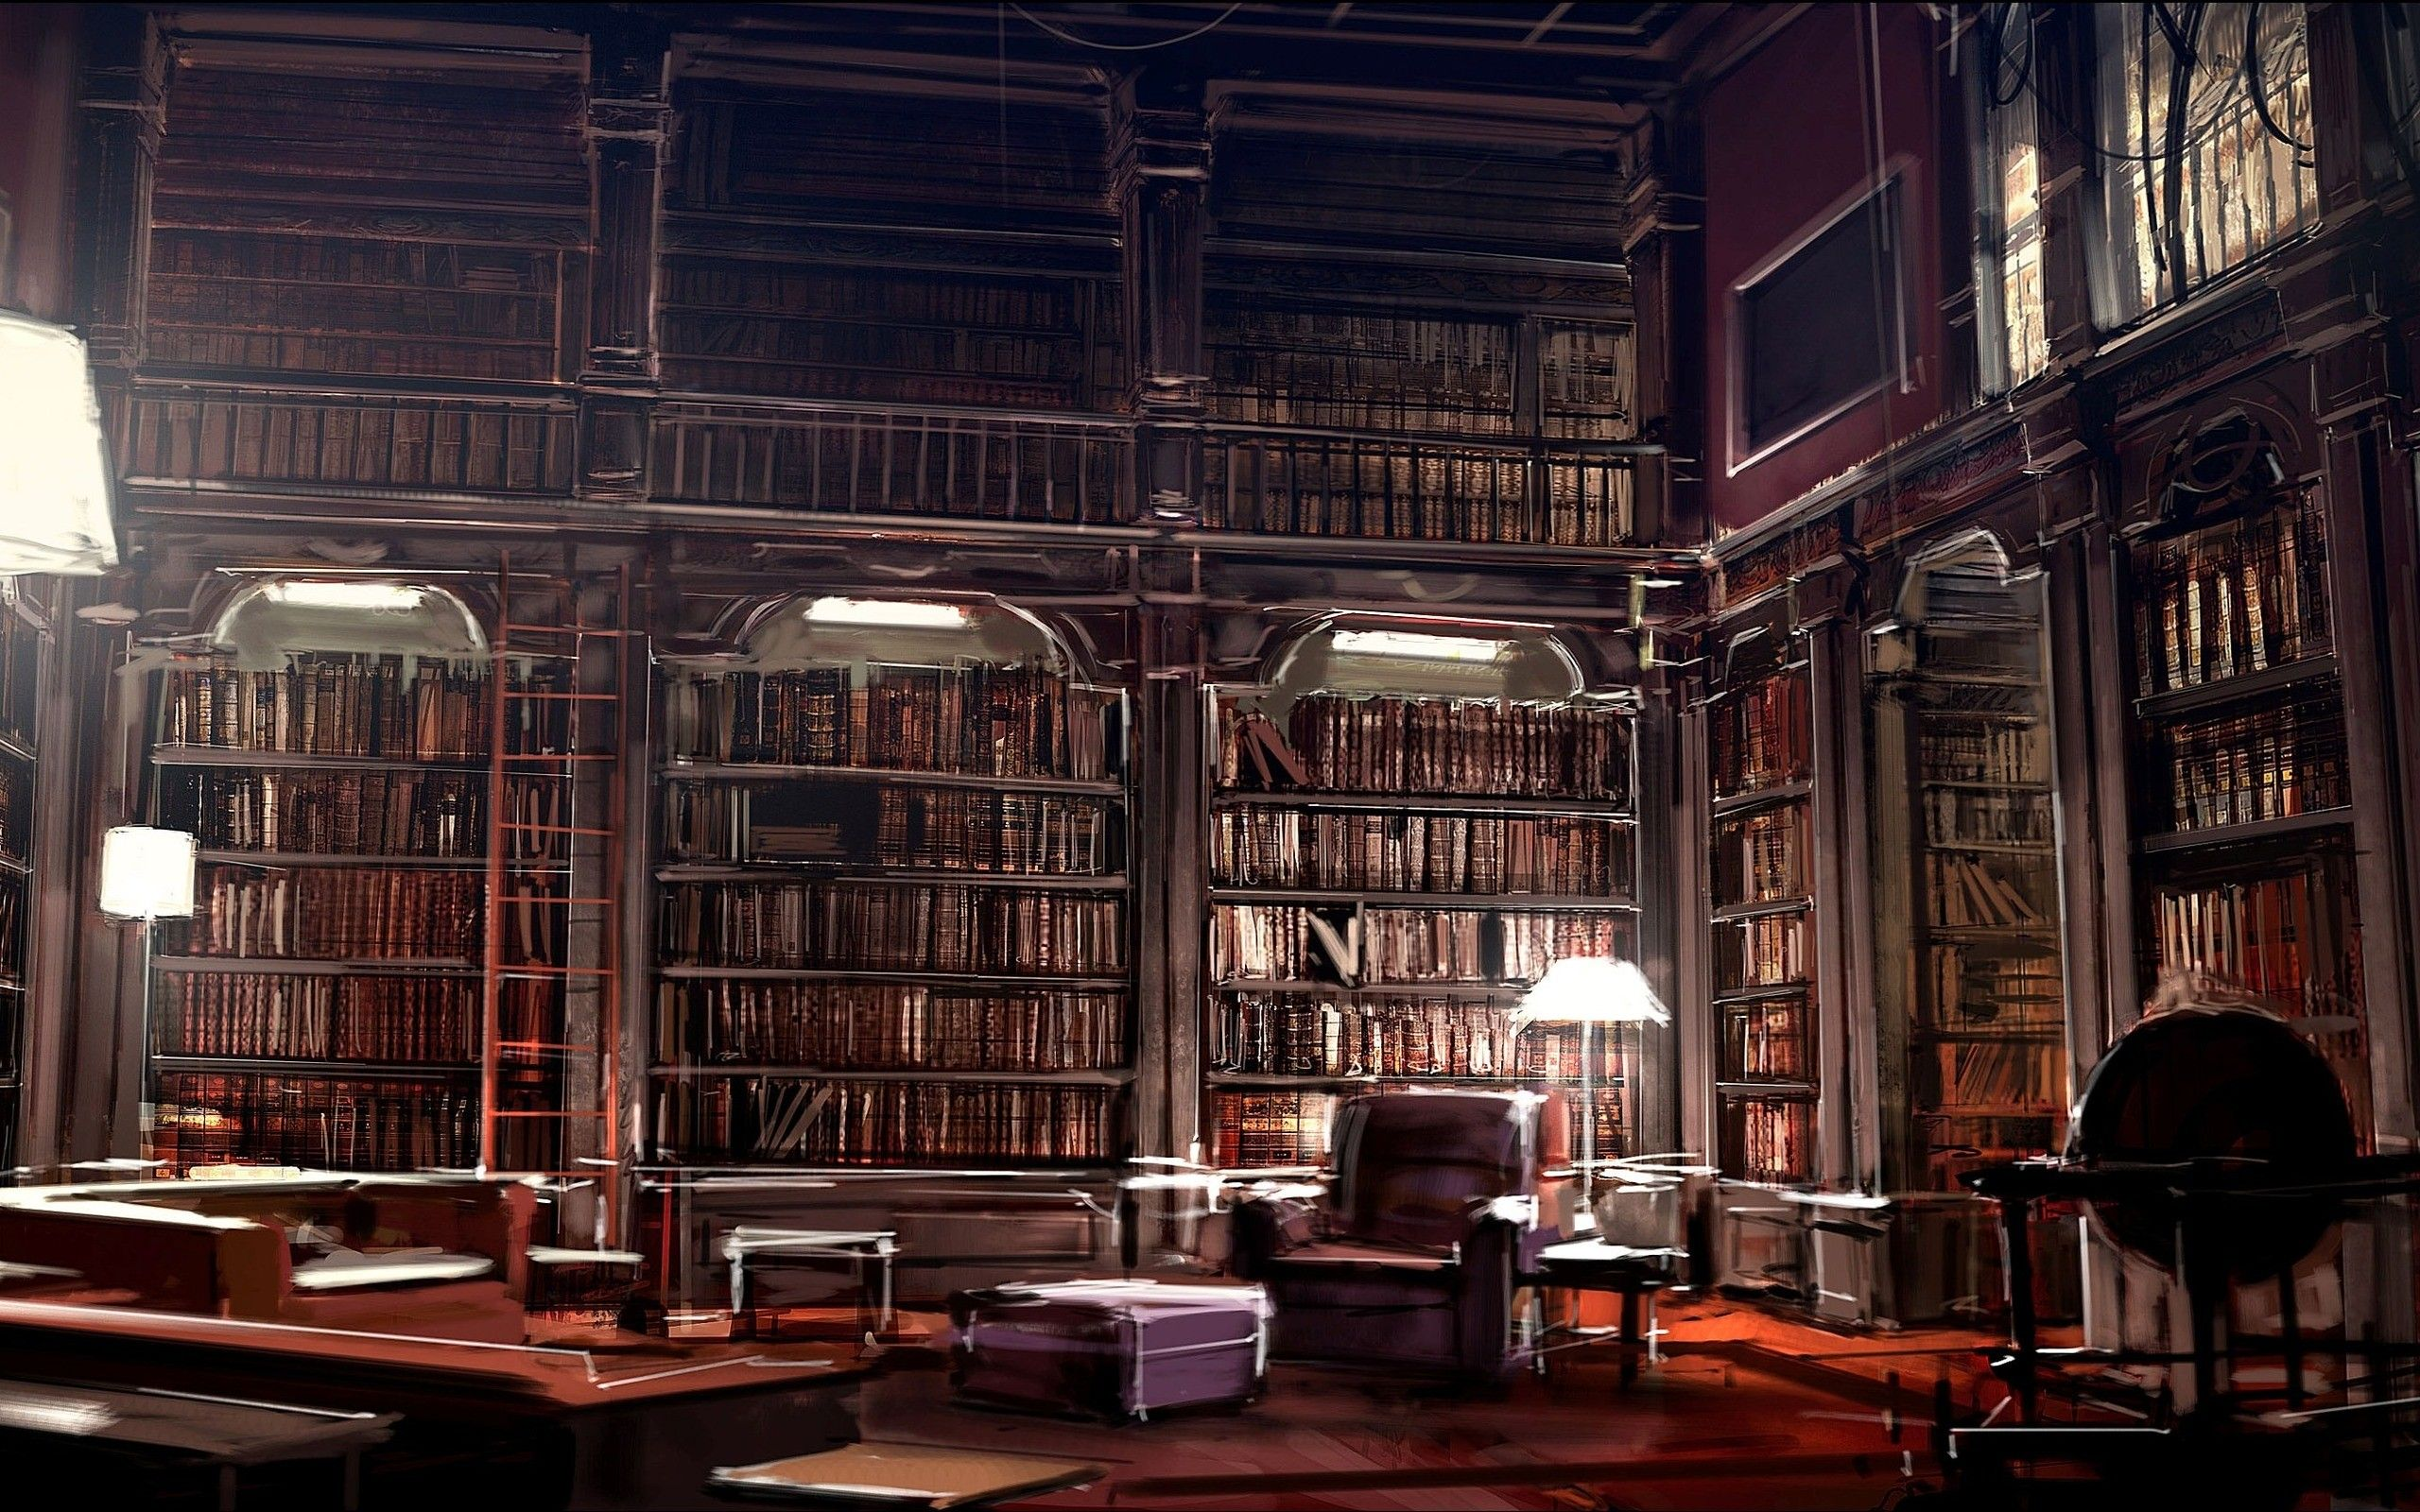 Books To Read Wallpaper Libraries Reading Wallpapers Old Libraries Hogwarts Library Home Libraries